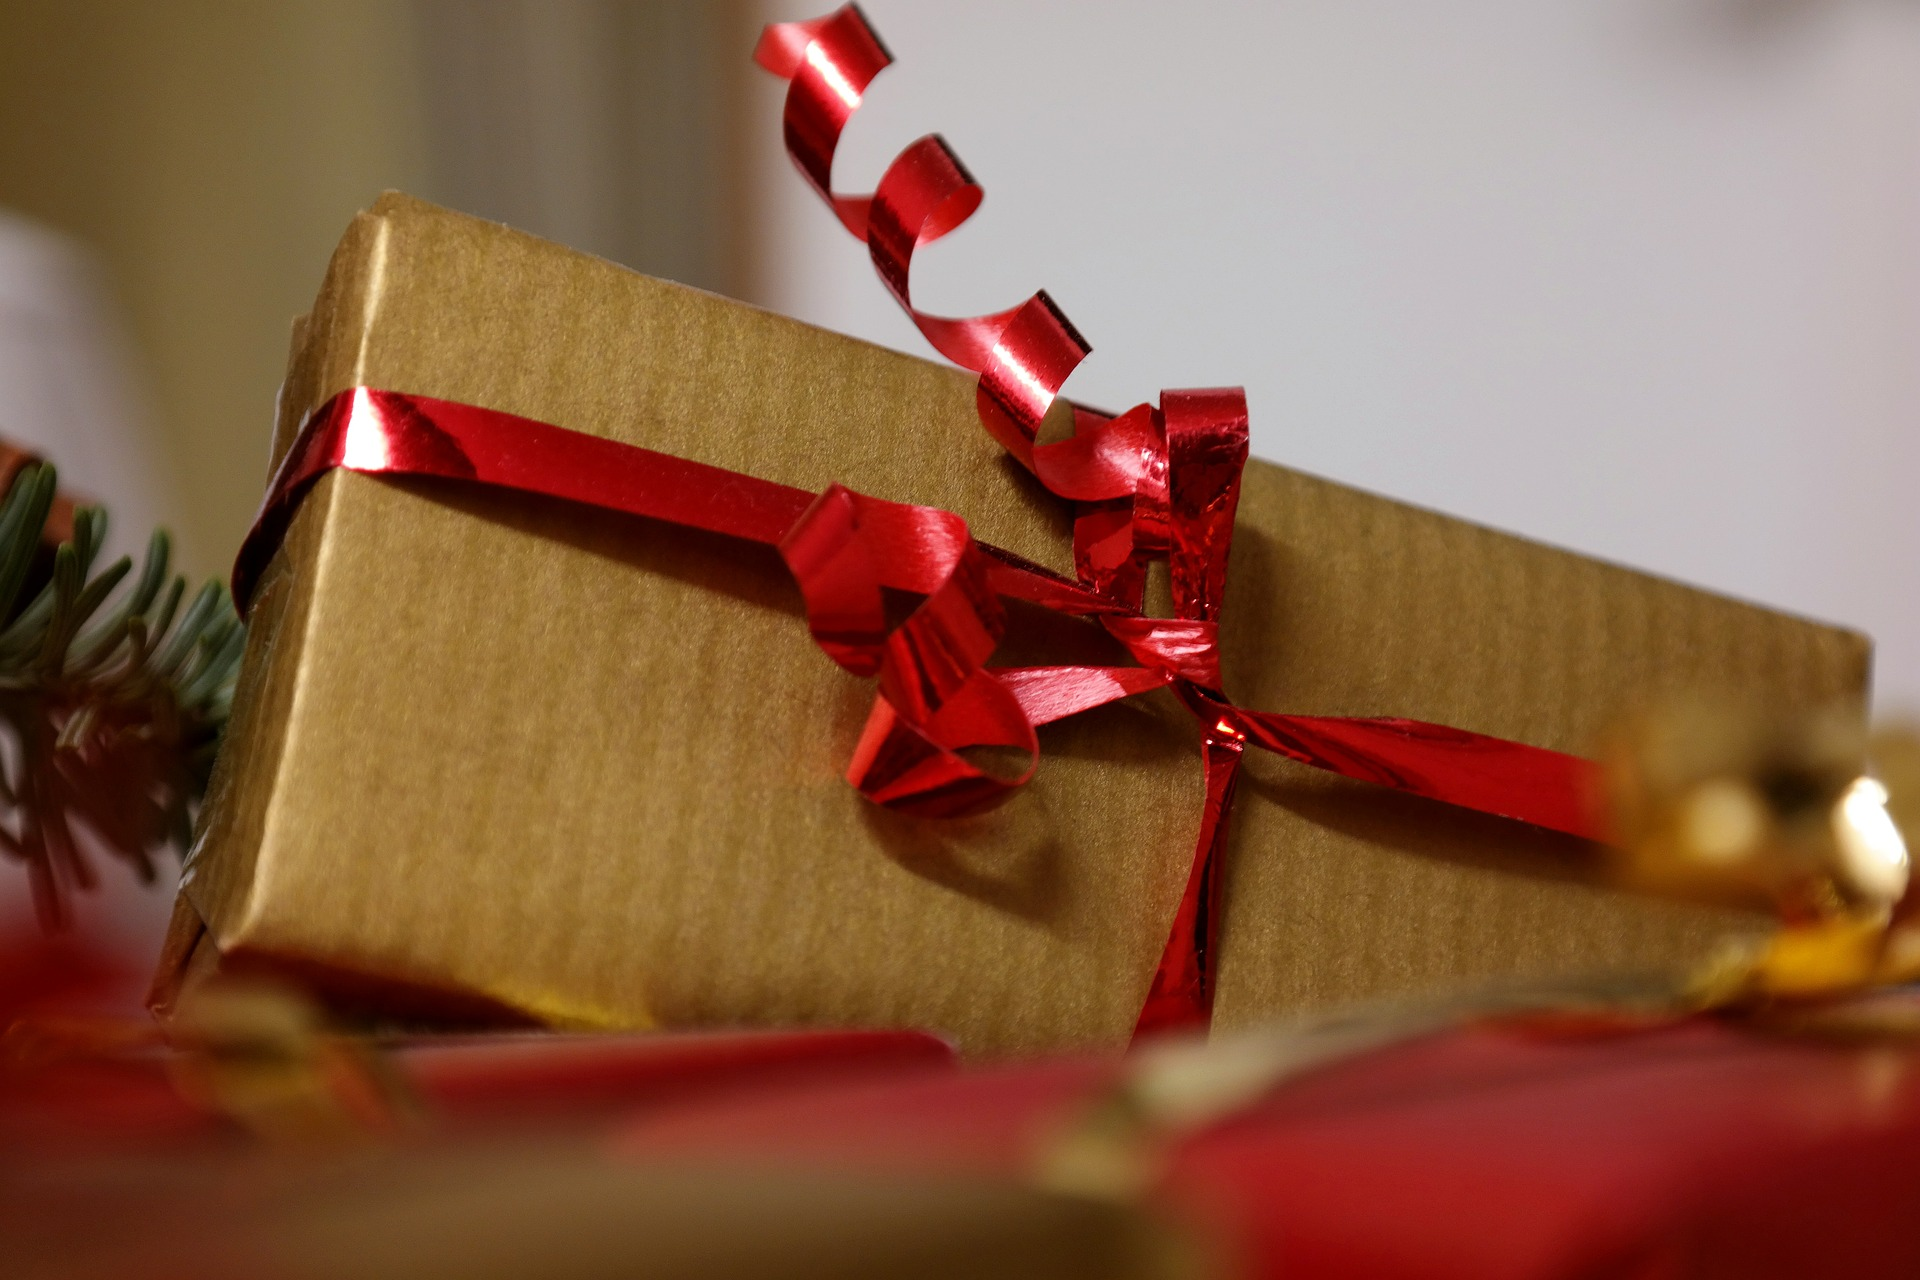 Christmas Comes to Children of Incarcerated Parents